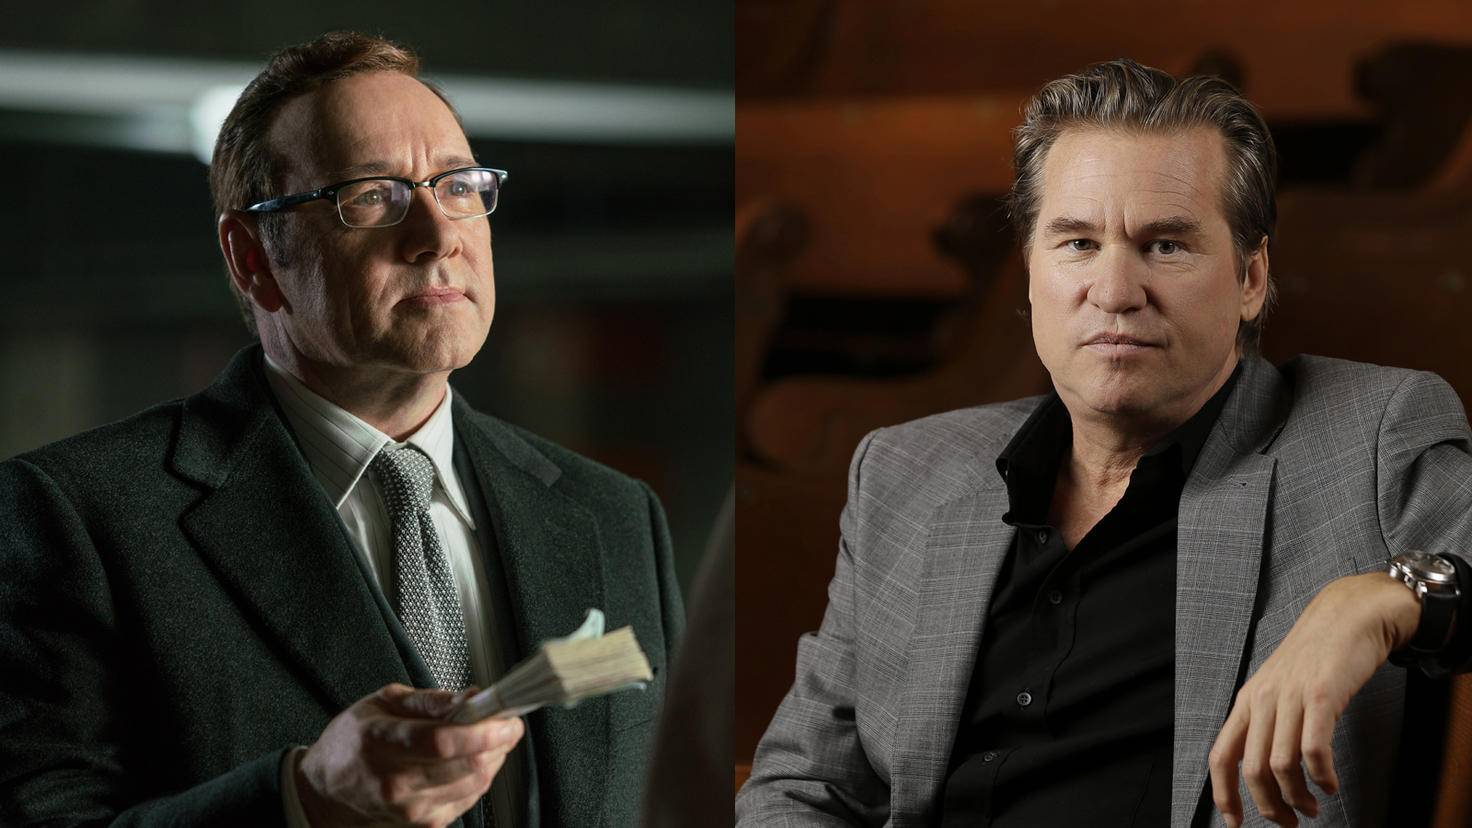 Baby Driver-Kevin Spacey-Sony Pictures-Val Kilmer-picture alliance-AP Images-45402233